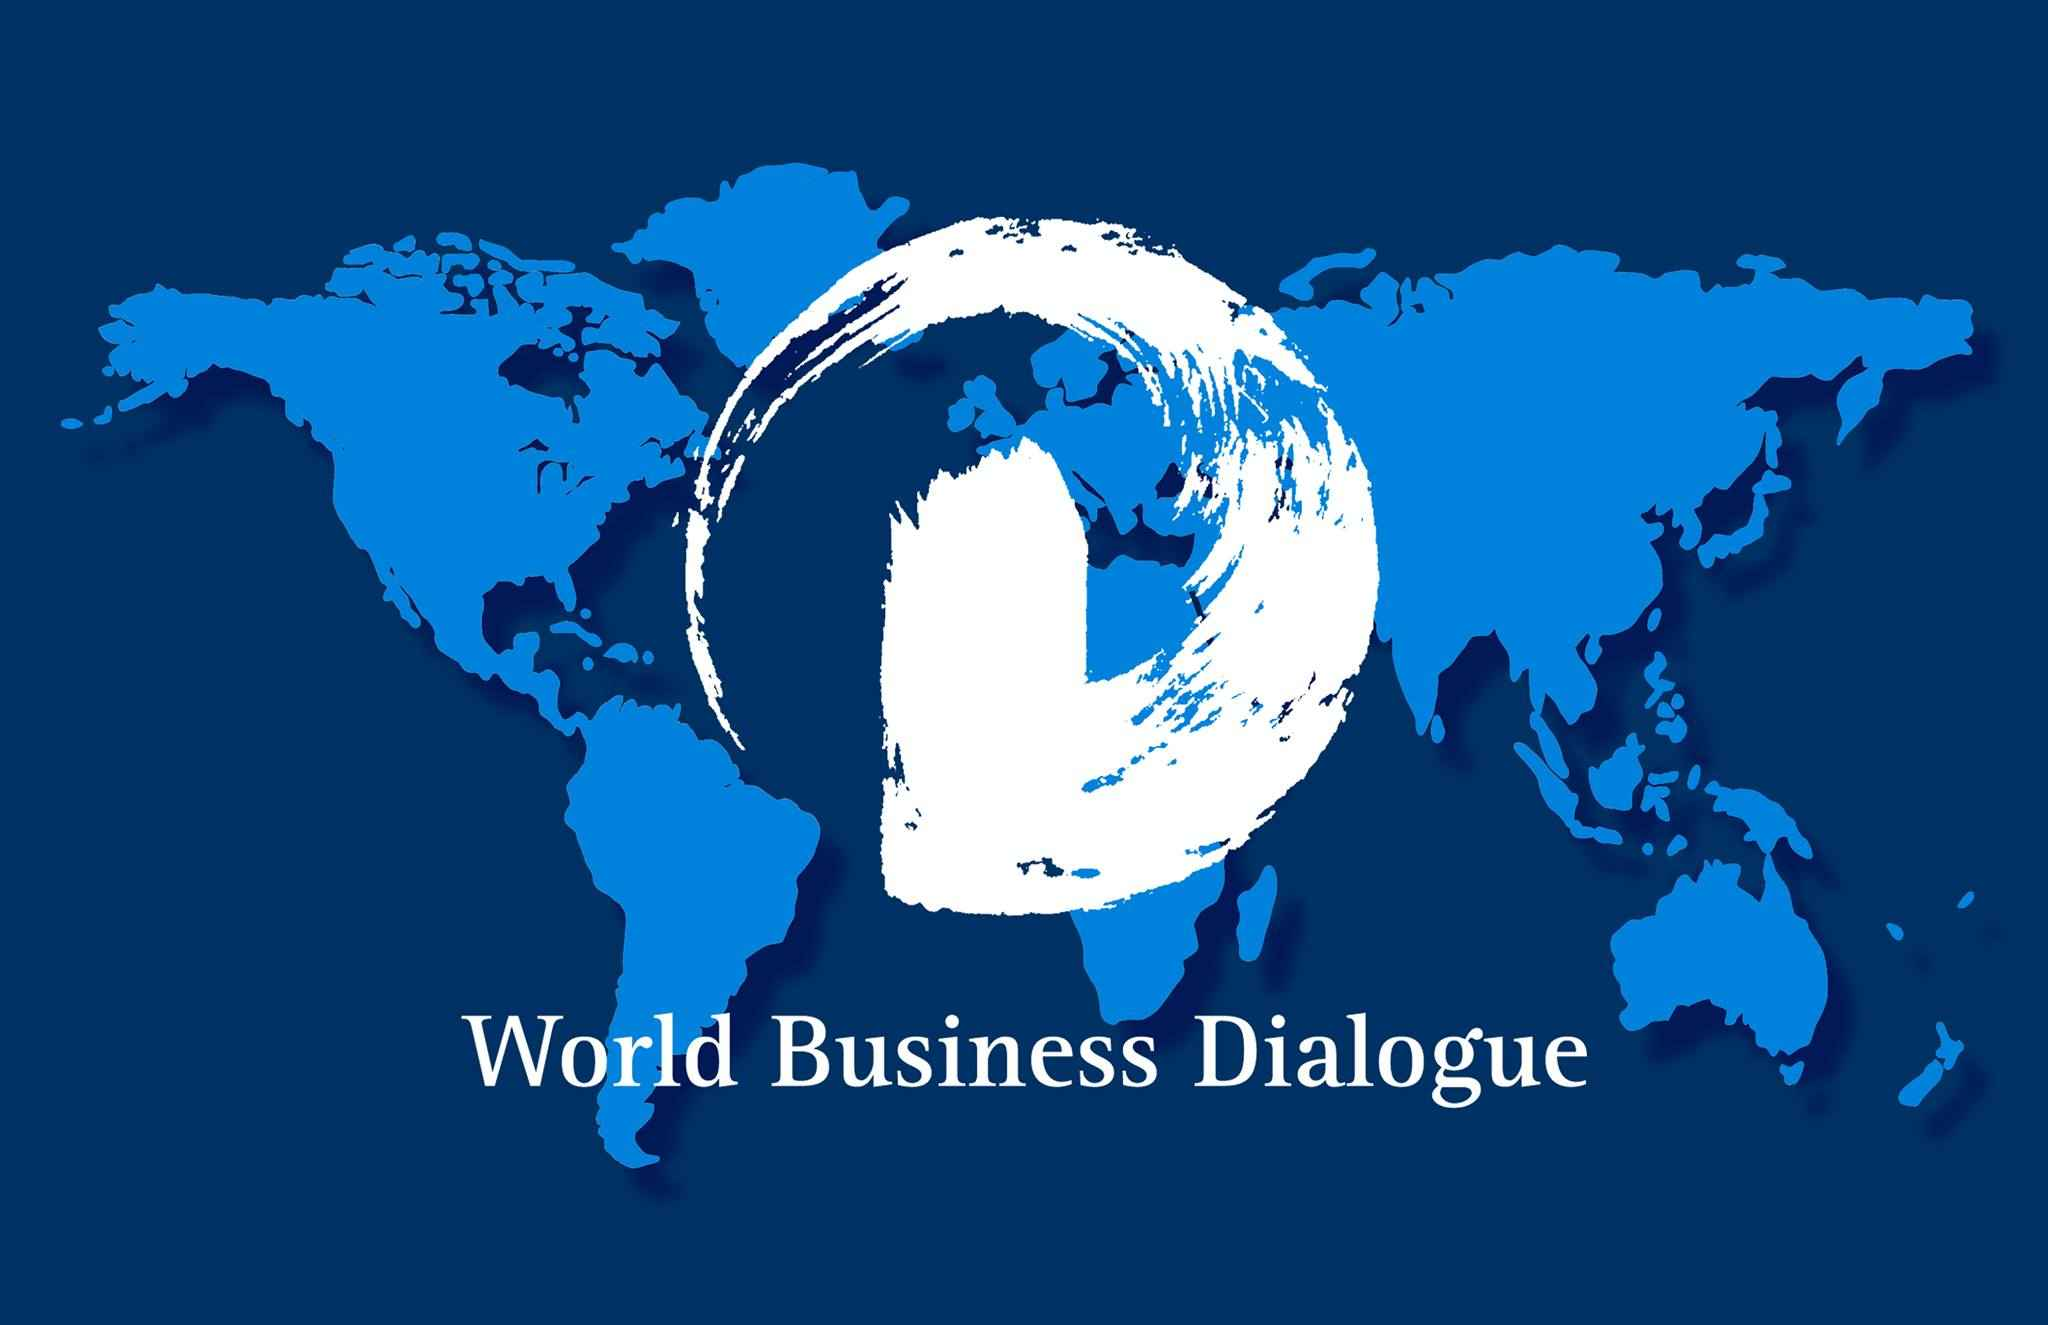 Apply to attend the World Business Dialogue 2015 in Cologne, Germany